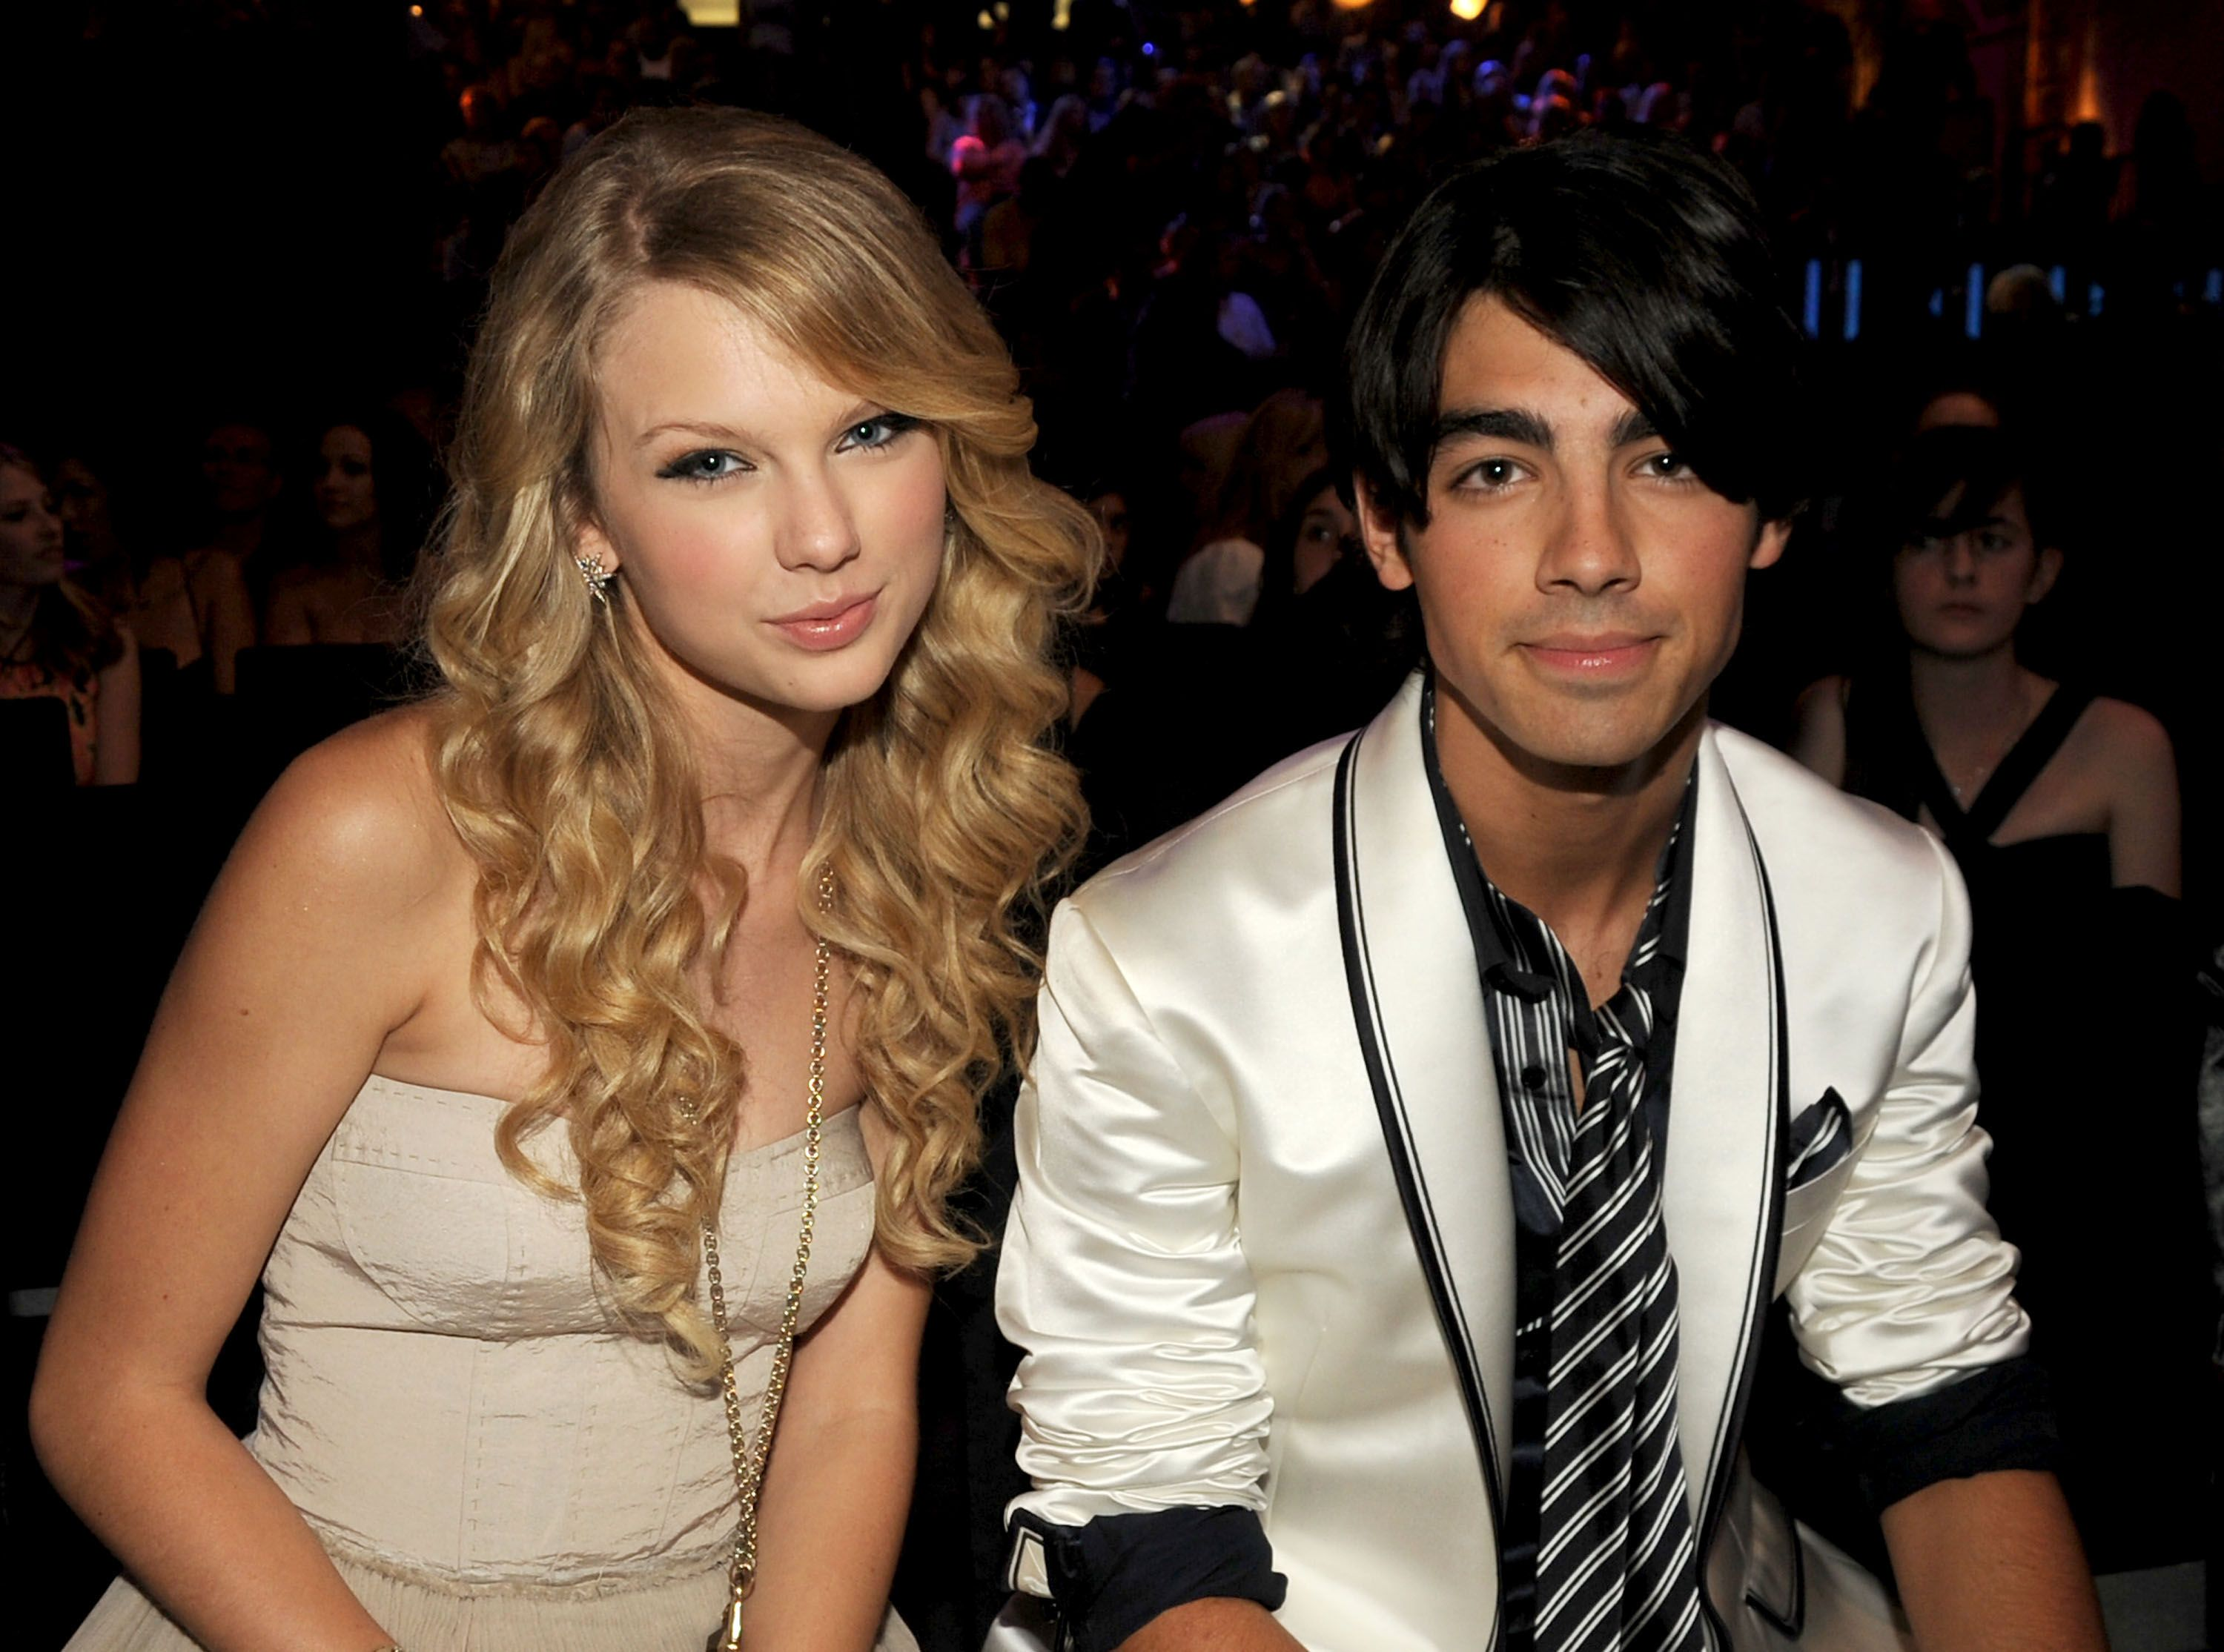 Joe Jonas on How He Felt Hearing Taylor Swift Say She Regretted Putting Him 'on Blast' for Dumping Her